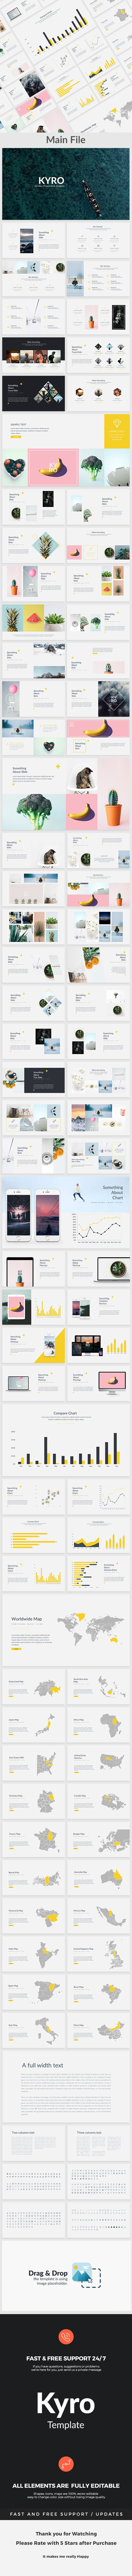 Kyro - Creative Powerpoint Template - 85+ Unique Slides